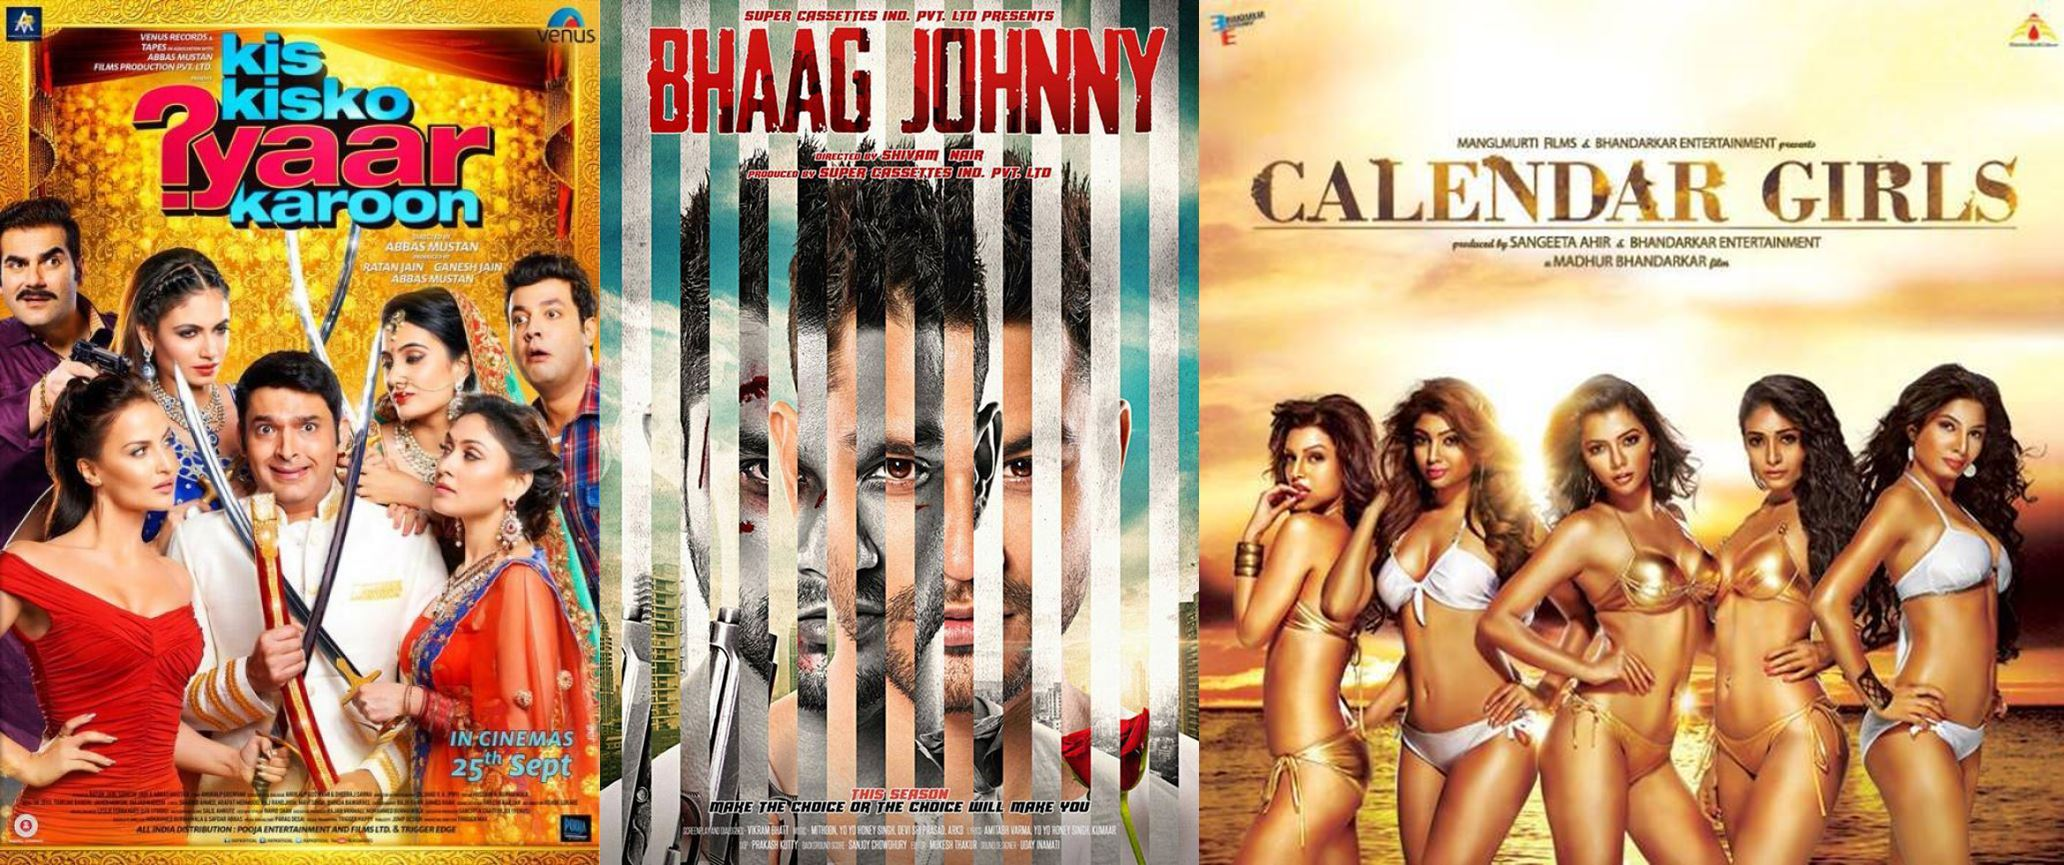 10 Biggest Bollywood Clashes in 2015-2016-Kis Kisko Pyaar Karoon v/s Bhaag Johnny v/s Calendar Girls